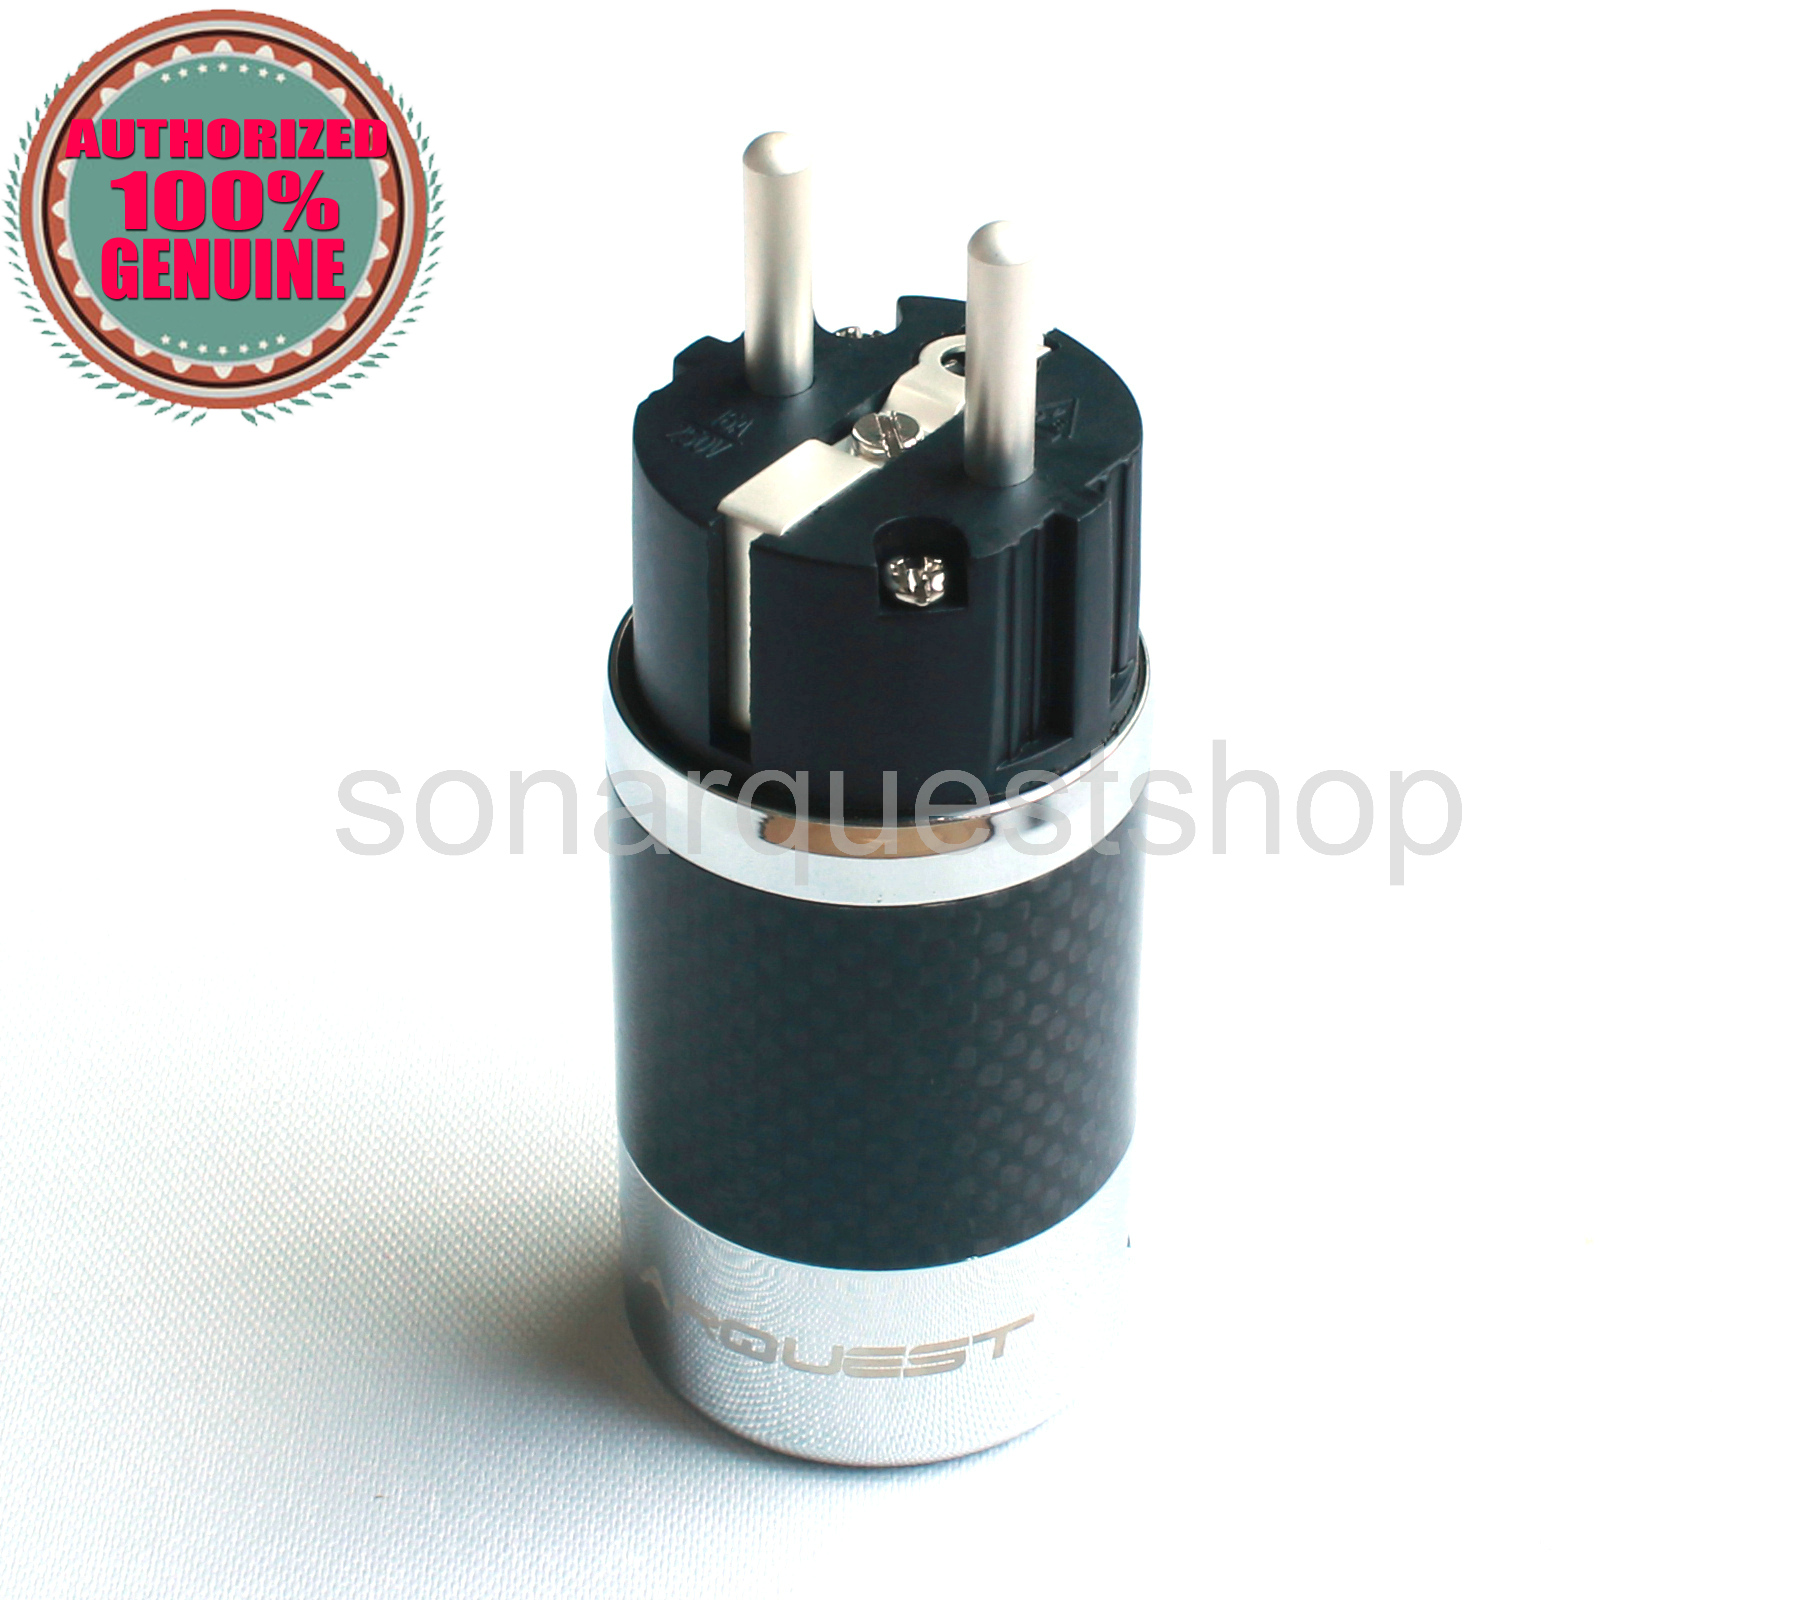 SONARQUEST SQ-E39(Ag)B EU silver Plated BK Carbon fiber Power Plug